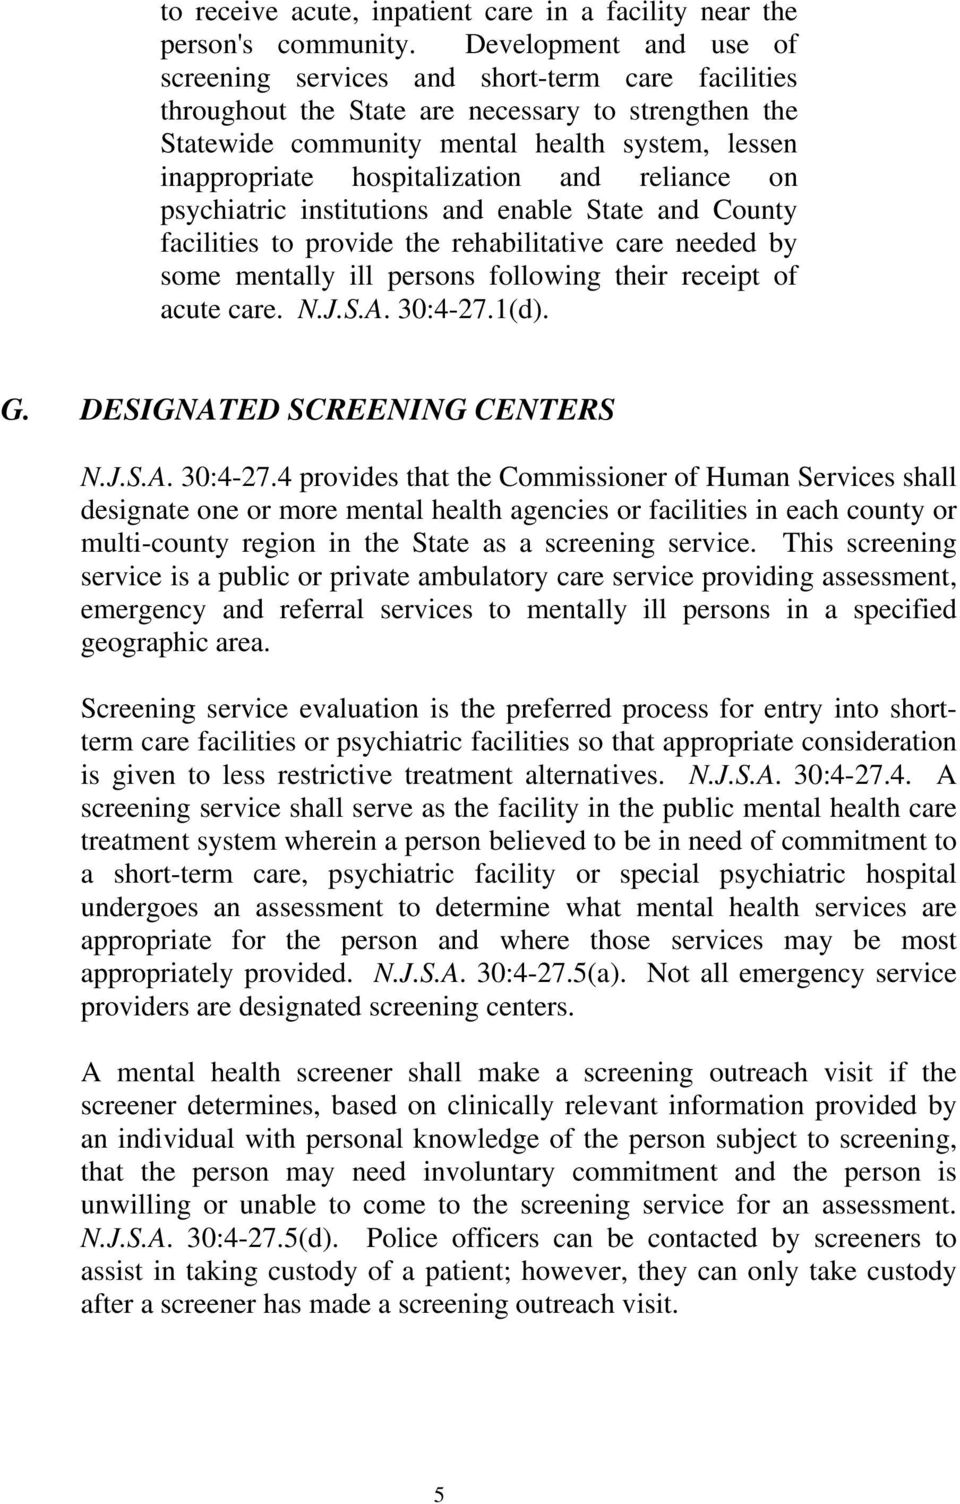 hospitalization and reliance on psychiatric institutions and enable State and County facilities to provide the rehabilitative care needed by some mentally ill persons following their receipt of acute